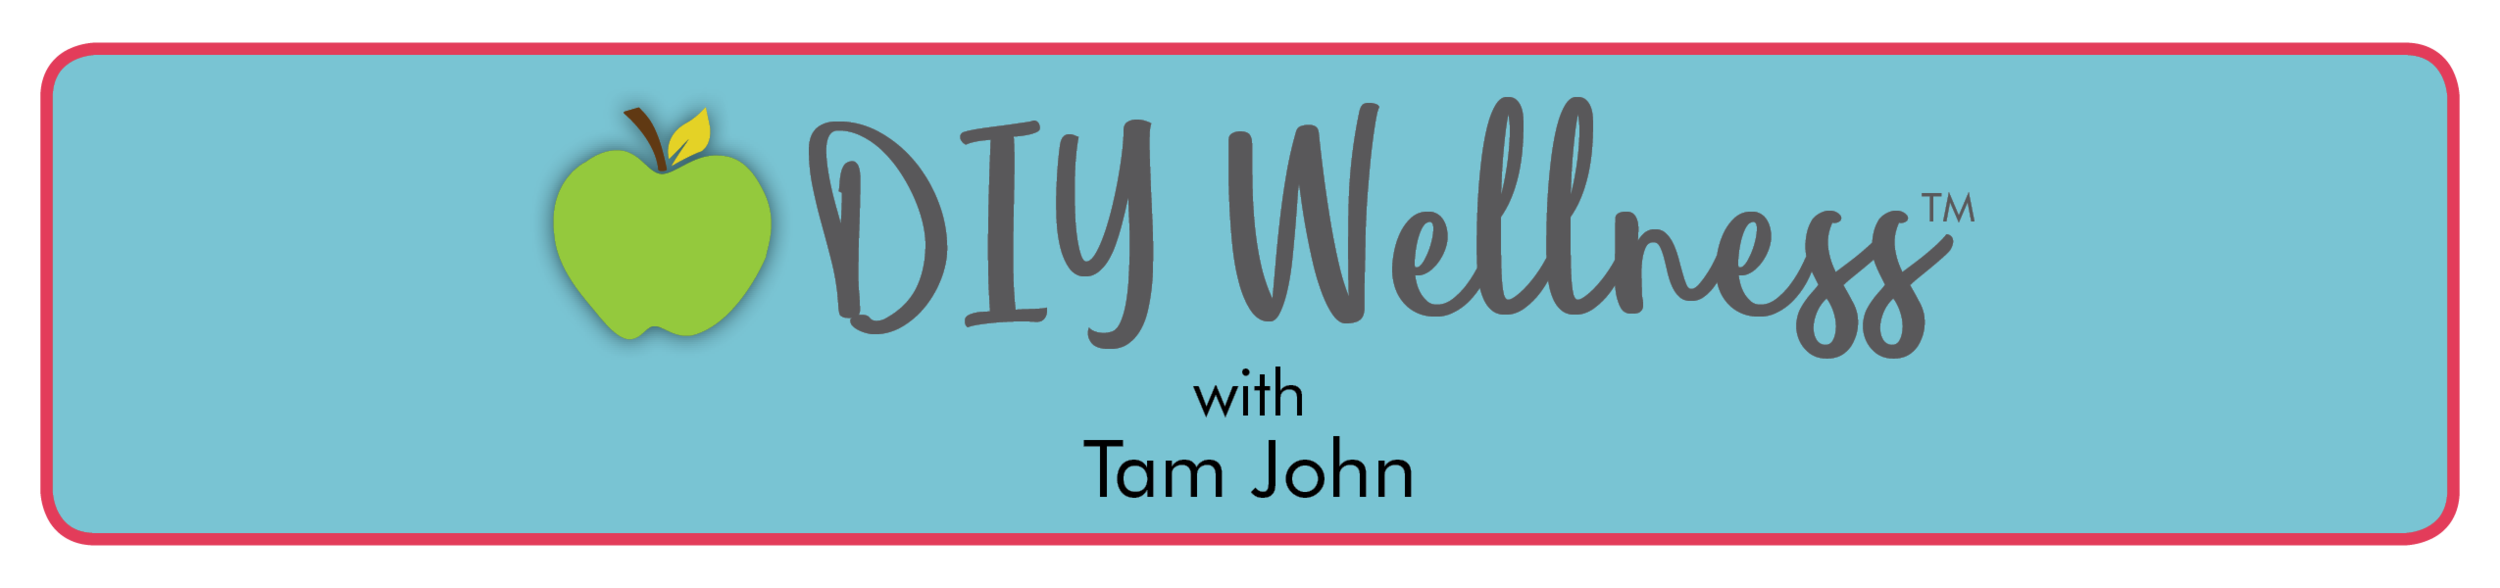 """Self care is the best health care.  Because it works for life!   Tam John , Author of ' A Fresh Wellness Mindset ' and founder of the  EatRight-LiveWell™  Holistic System for Smarter Self Care offer the DIY Wellness blog.  It's fresh inspiration for your healthful life journey.  You see, not everything healthy is healthful for everyone.  Learn to know how to choose well for you, because you are one in seven billion!   Schedule a complimentary 15 minute phone call  with Tam John, ask your Qs and find out if the EatRight-LiveWell™ approach is a fit for you.  Tam John authored   A Fresh Wellness Mindset   to guide readers to learn to love food that loves them back. It isn't about one way of eating or a diet. It is a road map for a natural healthy life journey everyone can apply to their individuality.  The book is full of ingenuity you can apply to your real life whether you are at home or traveling; along with 19 easy 'all-American' every day recipes for breakfast, lunch, dinner and snacks (all free of gluten). Readers are guided to ultimately support pillars of good health, blood sugar balance and healthy digestion, for assimilation of nutrition and optimal energy.   ~~~~~~~According to Gray L. Graham, BA, NTP, Founder of the Nutritional Therapy Association, Inc. & Author of  Pottenger's Prophecy: How Food Can Reset Genes for Wellness or Illness….      """"A Fresh Wellness Mindset  is a refreshing and needed addition to the myriad of books written on the subject of nutrition and wellness. So many authors of nutrition take the position that they have discovered the one way and that their way is the only way. ...... Tam John's book is, on the other hand, a guide to self discovery that will lead her readers to the diet that works for them. No more """"diet of the month"""" approaches here. Tam carefully explains the nuances of important topics… """" Read Mr. Gray Graham's    full book review here"""